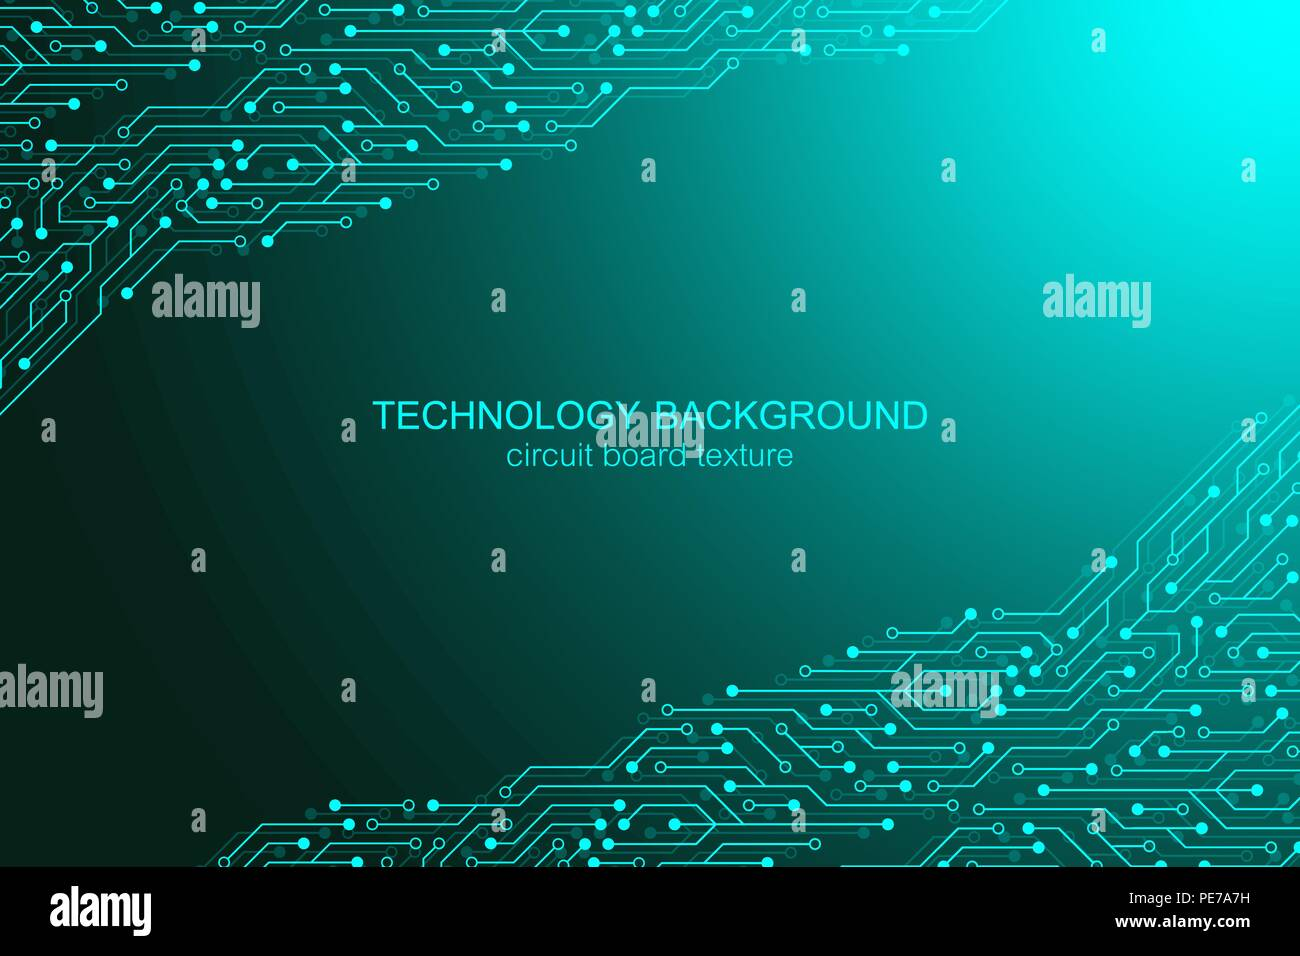 Computer Motherboard Vector Background With Circuit Board Electronic Green Chip Technology Texture Elements For Engineering Concept